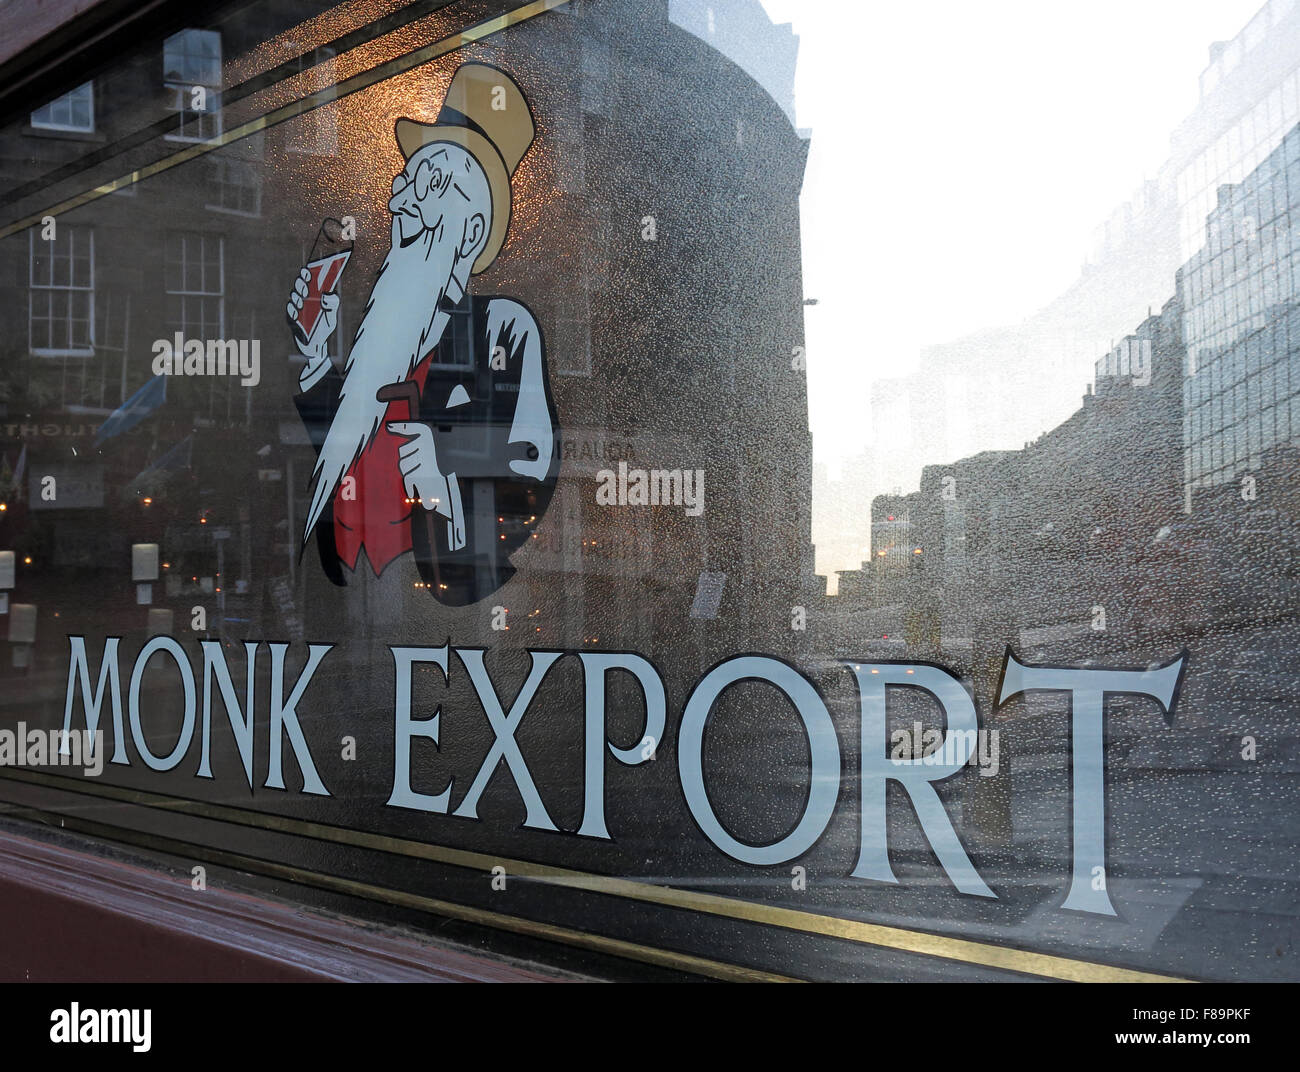 Monk Export Pale Ale window, Scottish Beers, Edinburgh,Scotland,UK - Stock Image